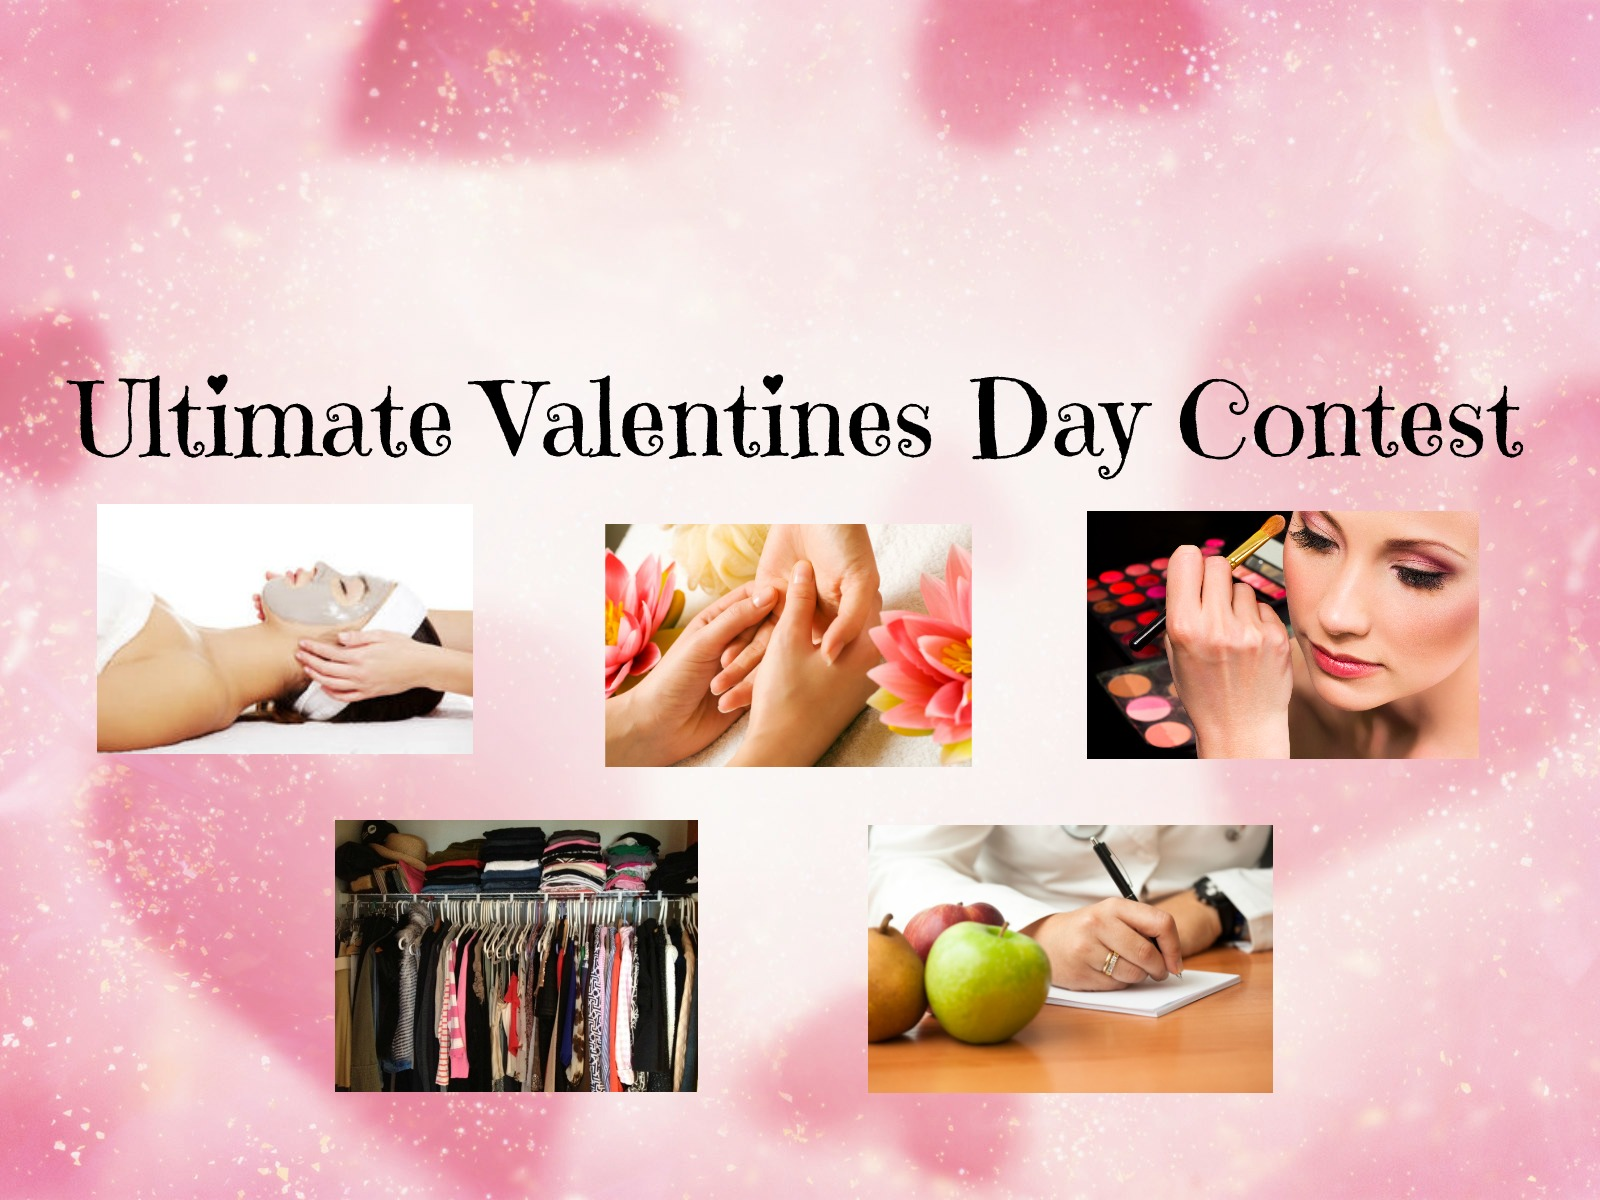 Ultimate Pamper Contest For Valentine's Day